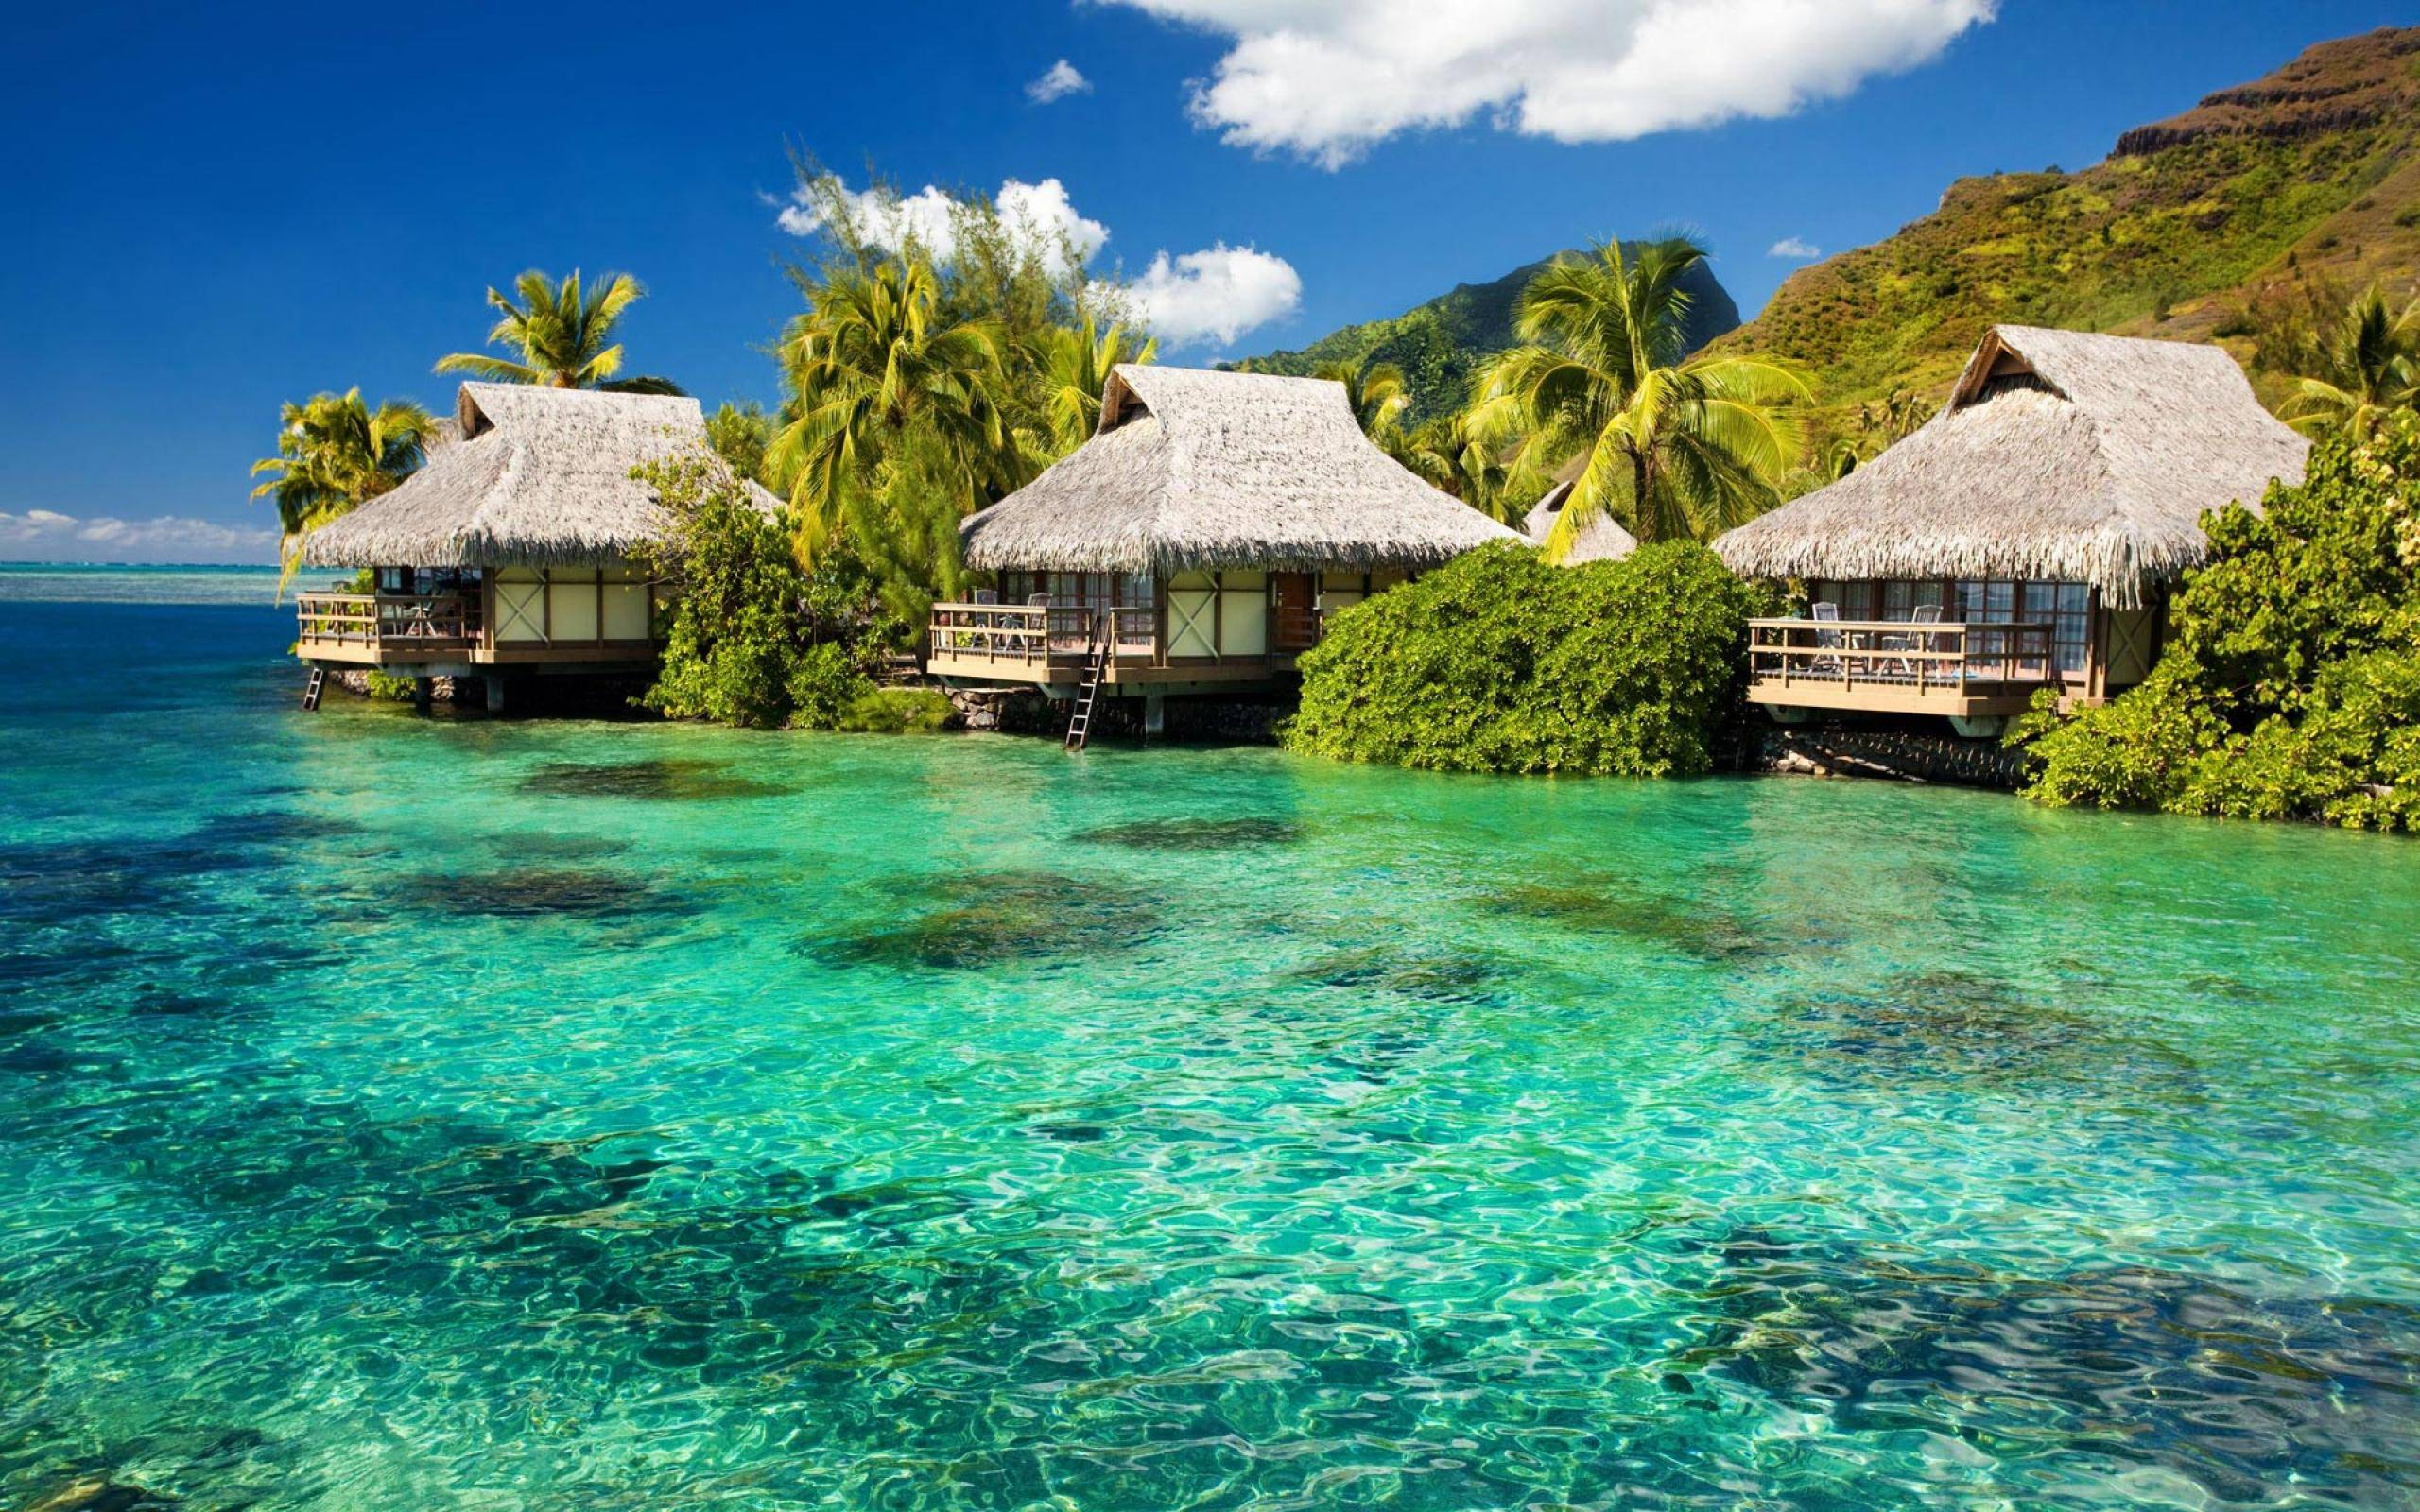 Exotic Beach Bungalows Free Wallpaper With 2560x1600 Resolution